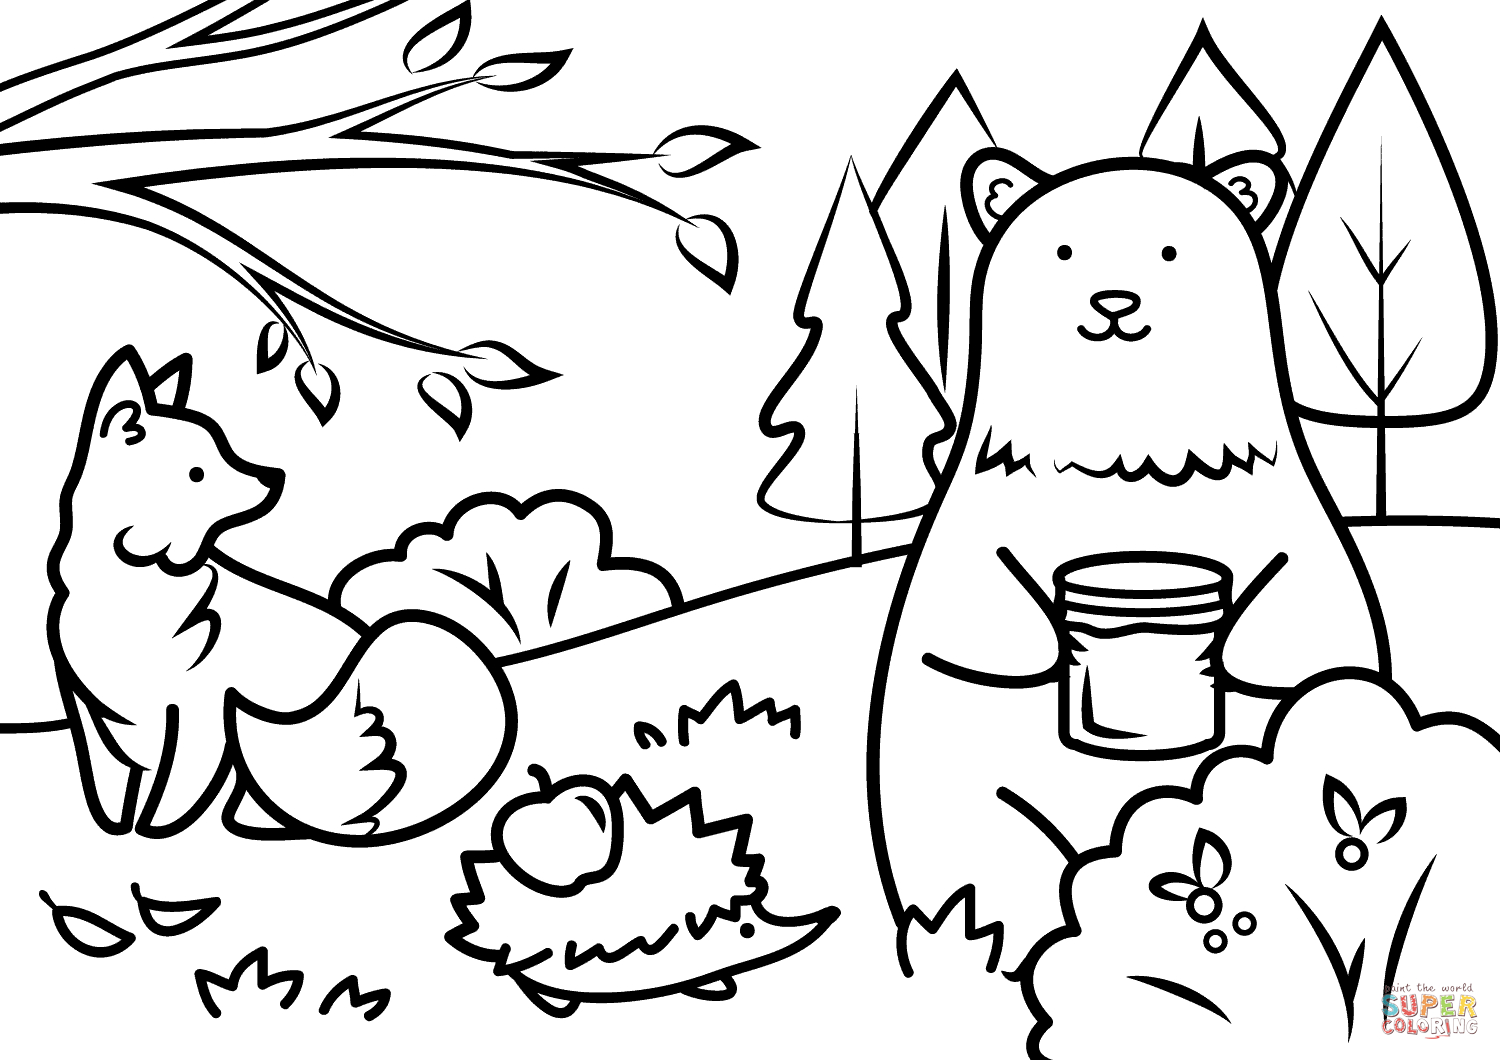 Coloring Pages ~ Printable Coloring Pages Kids Sheets For Save New - Free Printable Color Sheets For Preschool